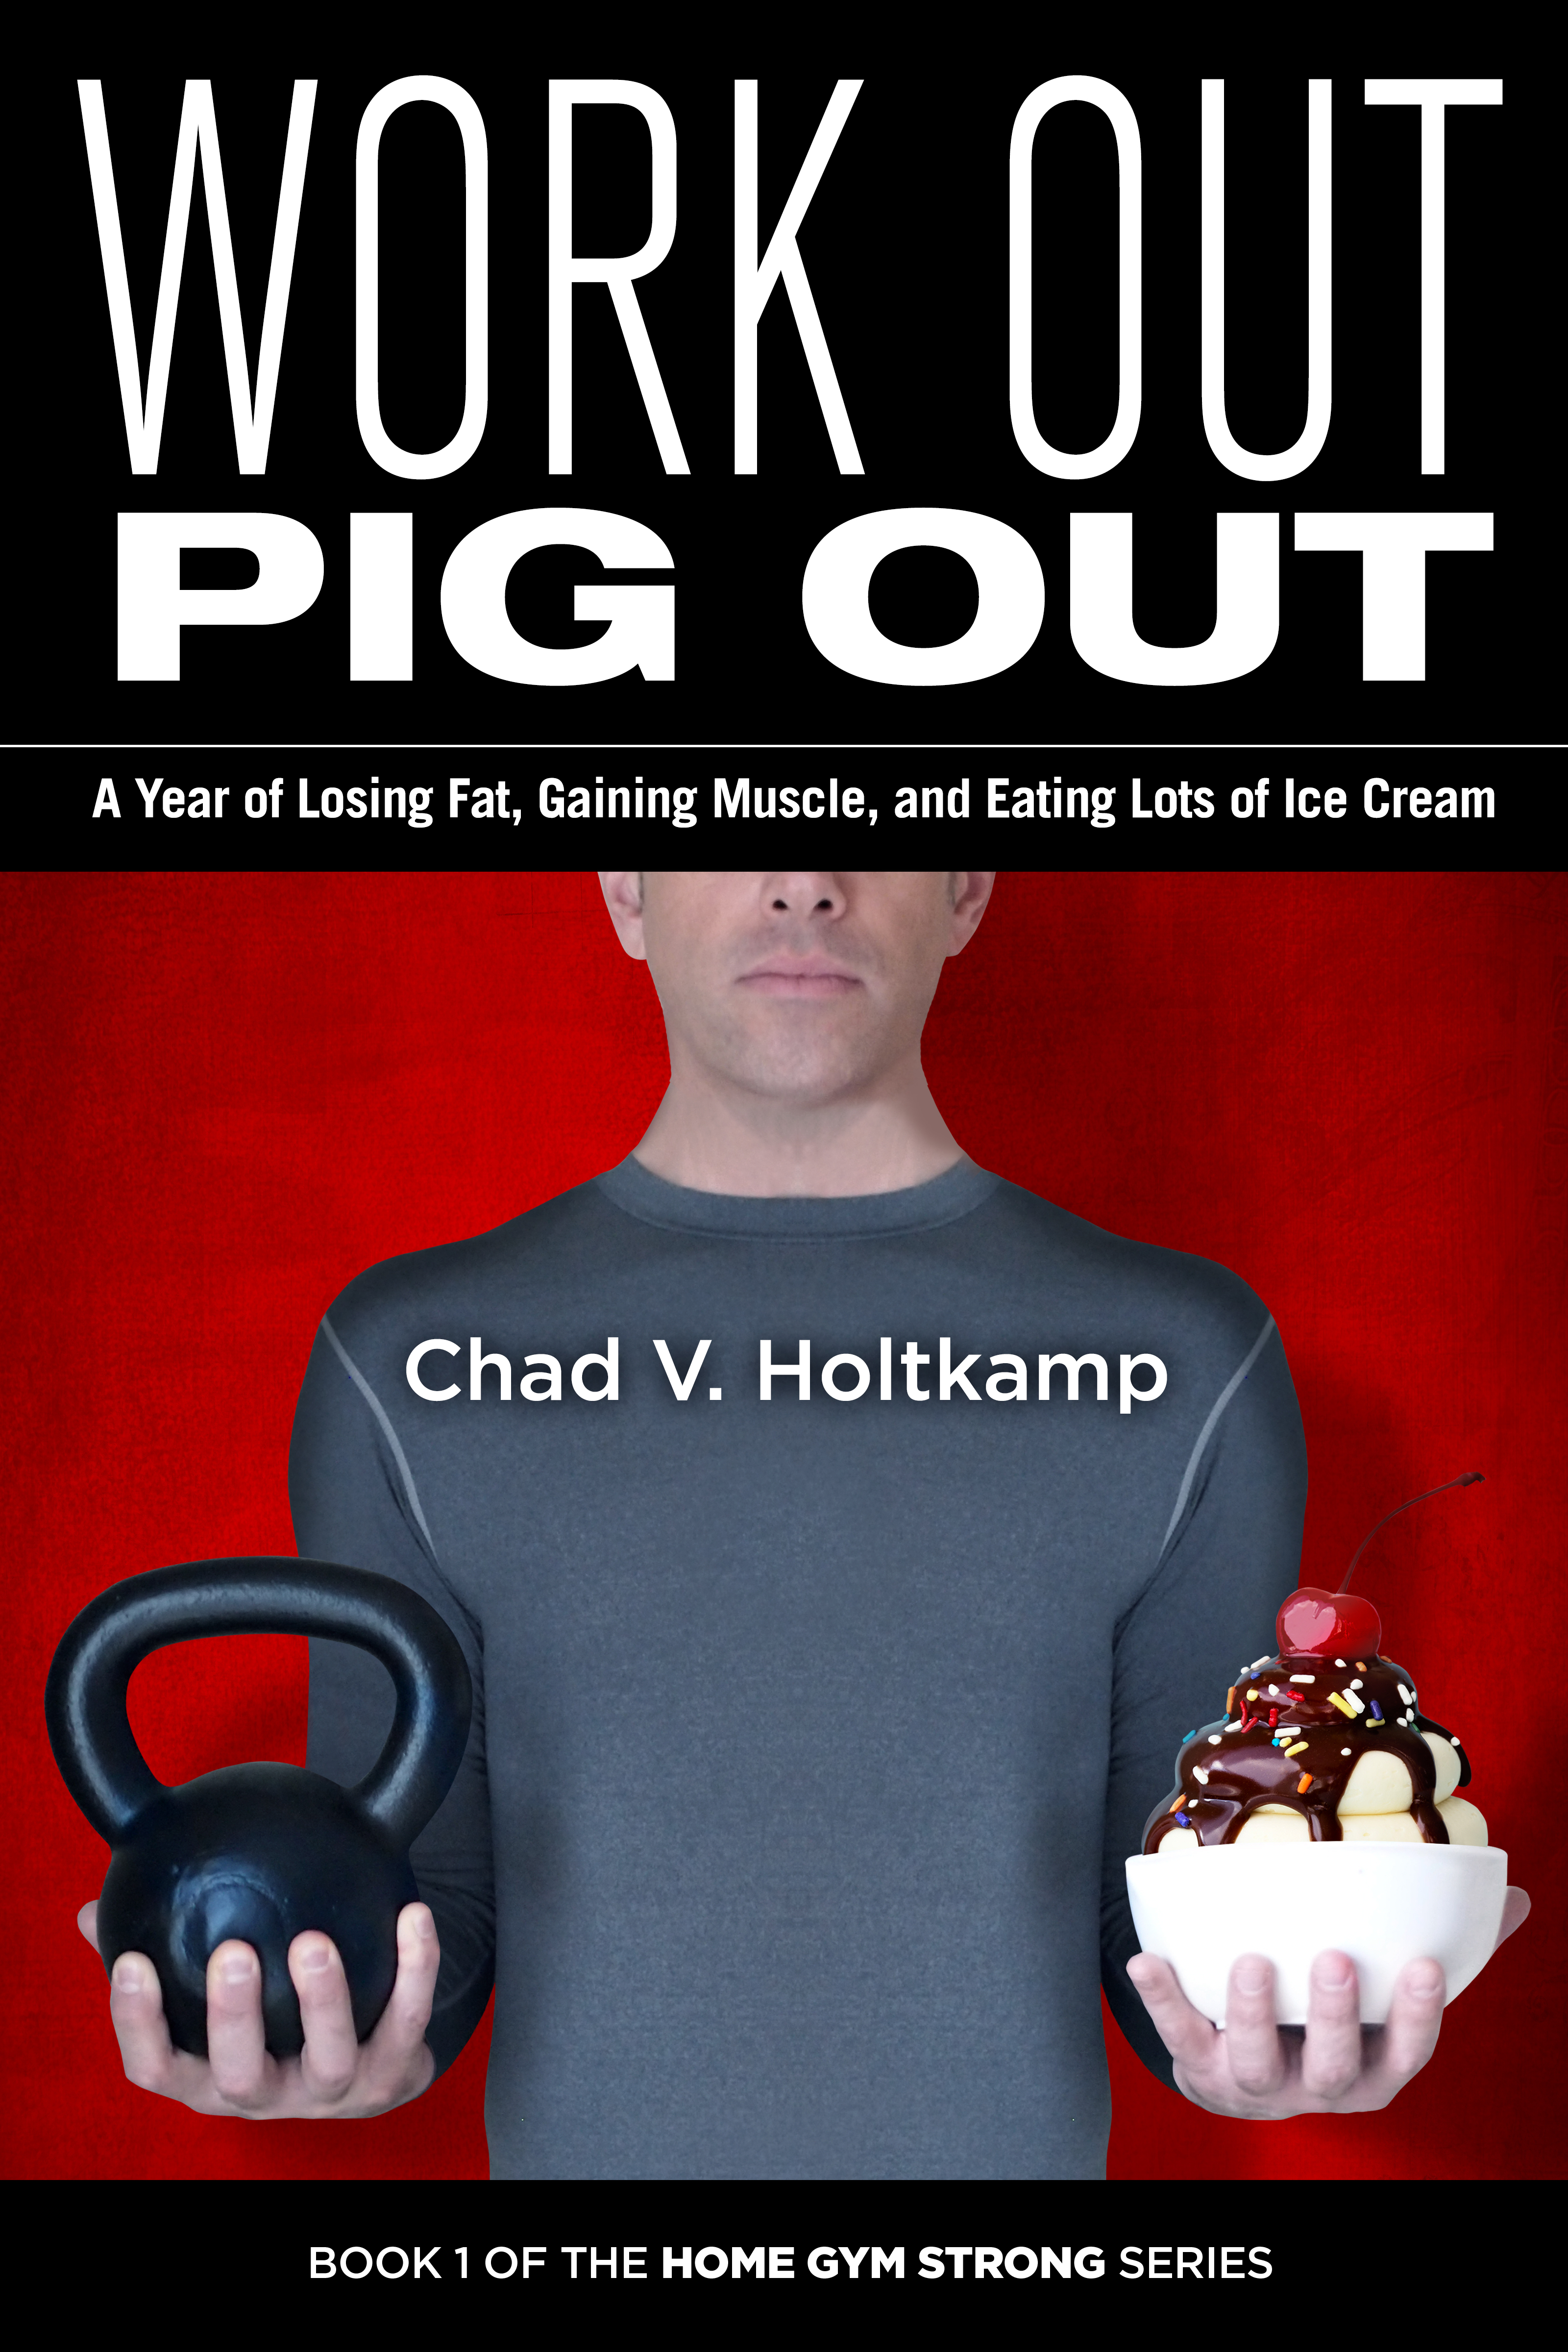 Work Out Pig Out Book Cover